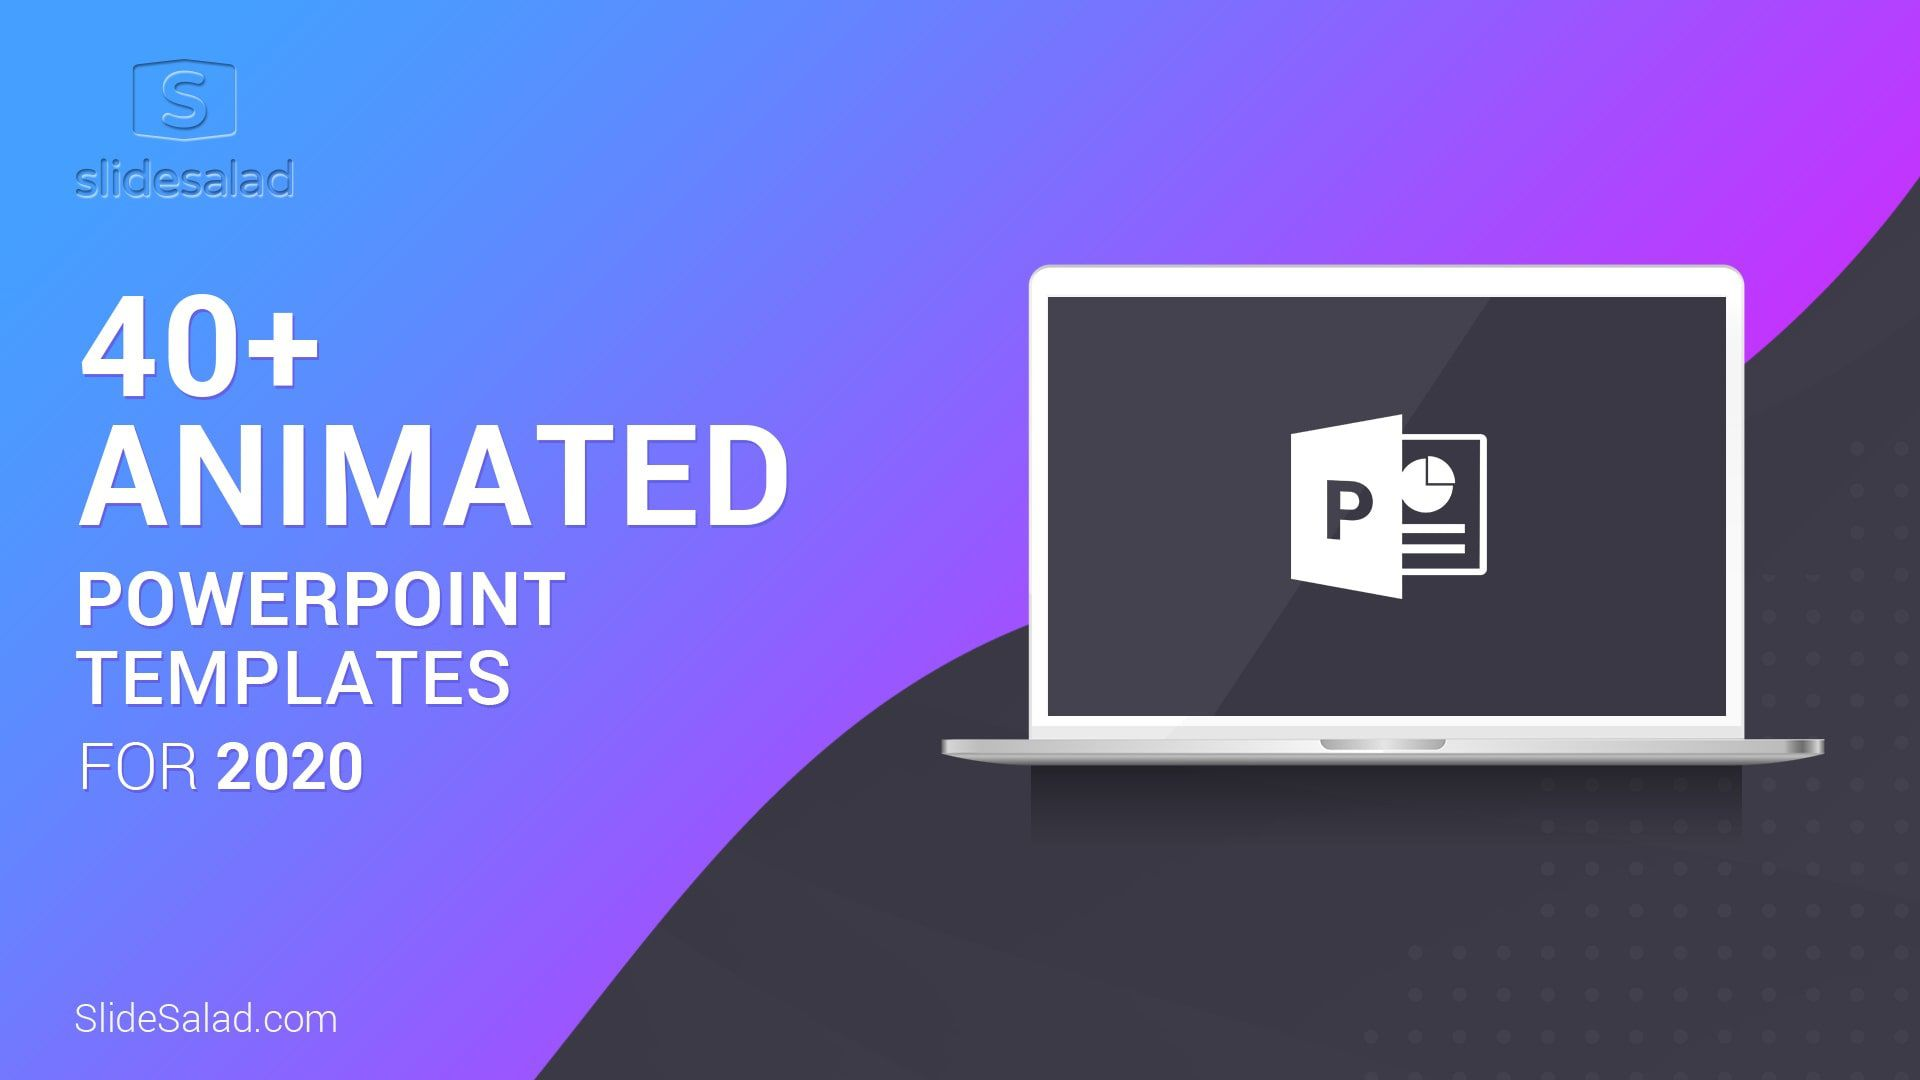 003 Striking 3d Animated Powerpoint Template Free Download 2016 Example Full